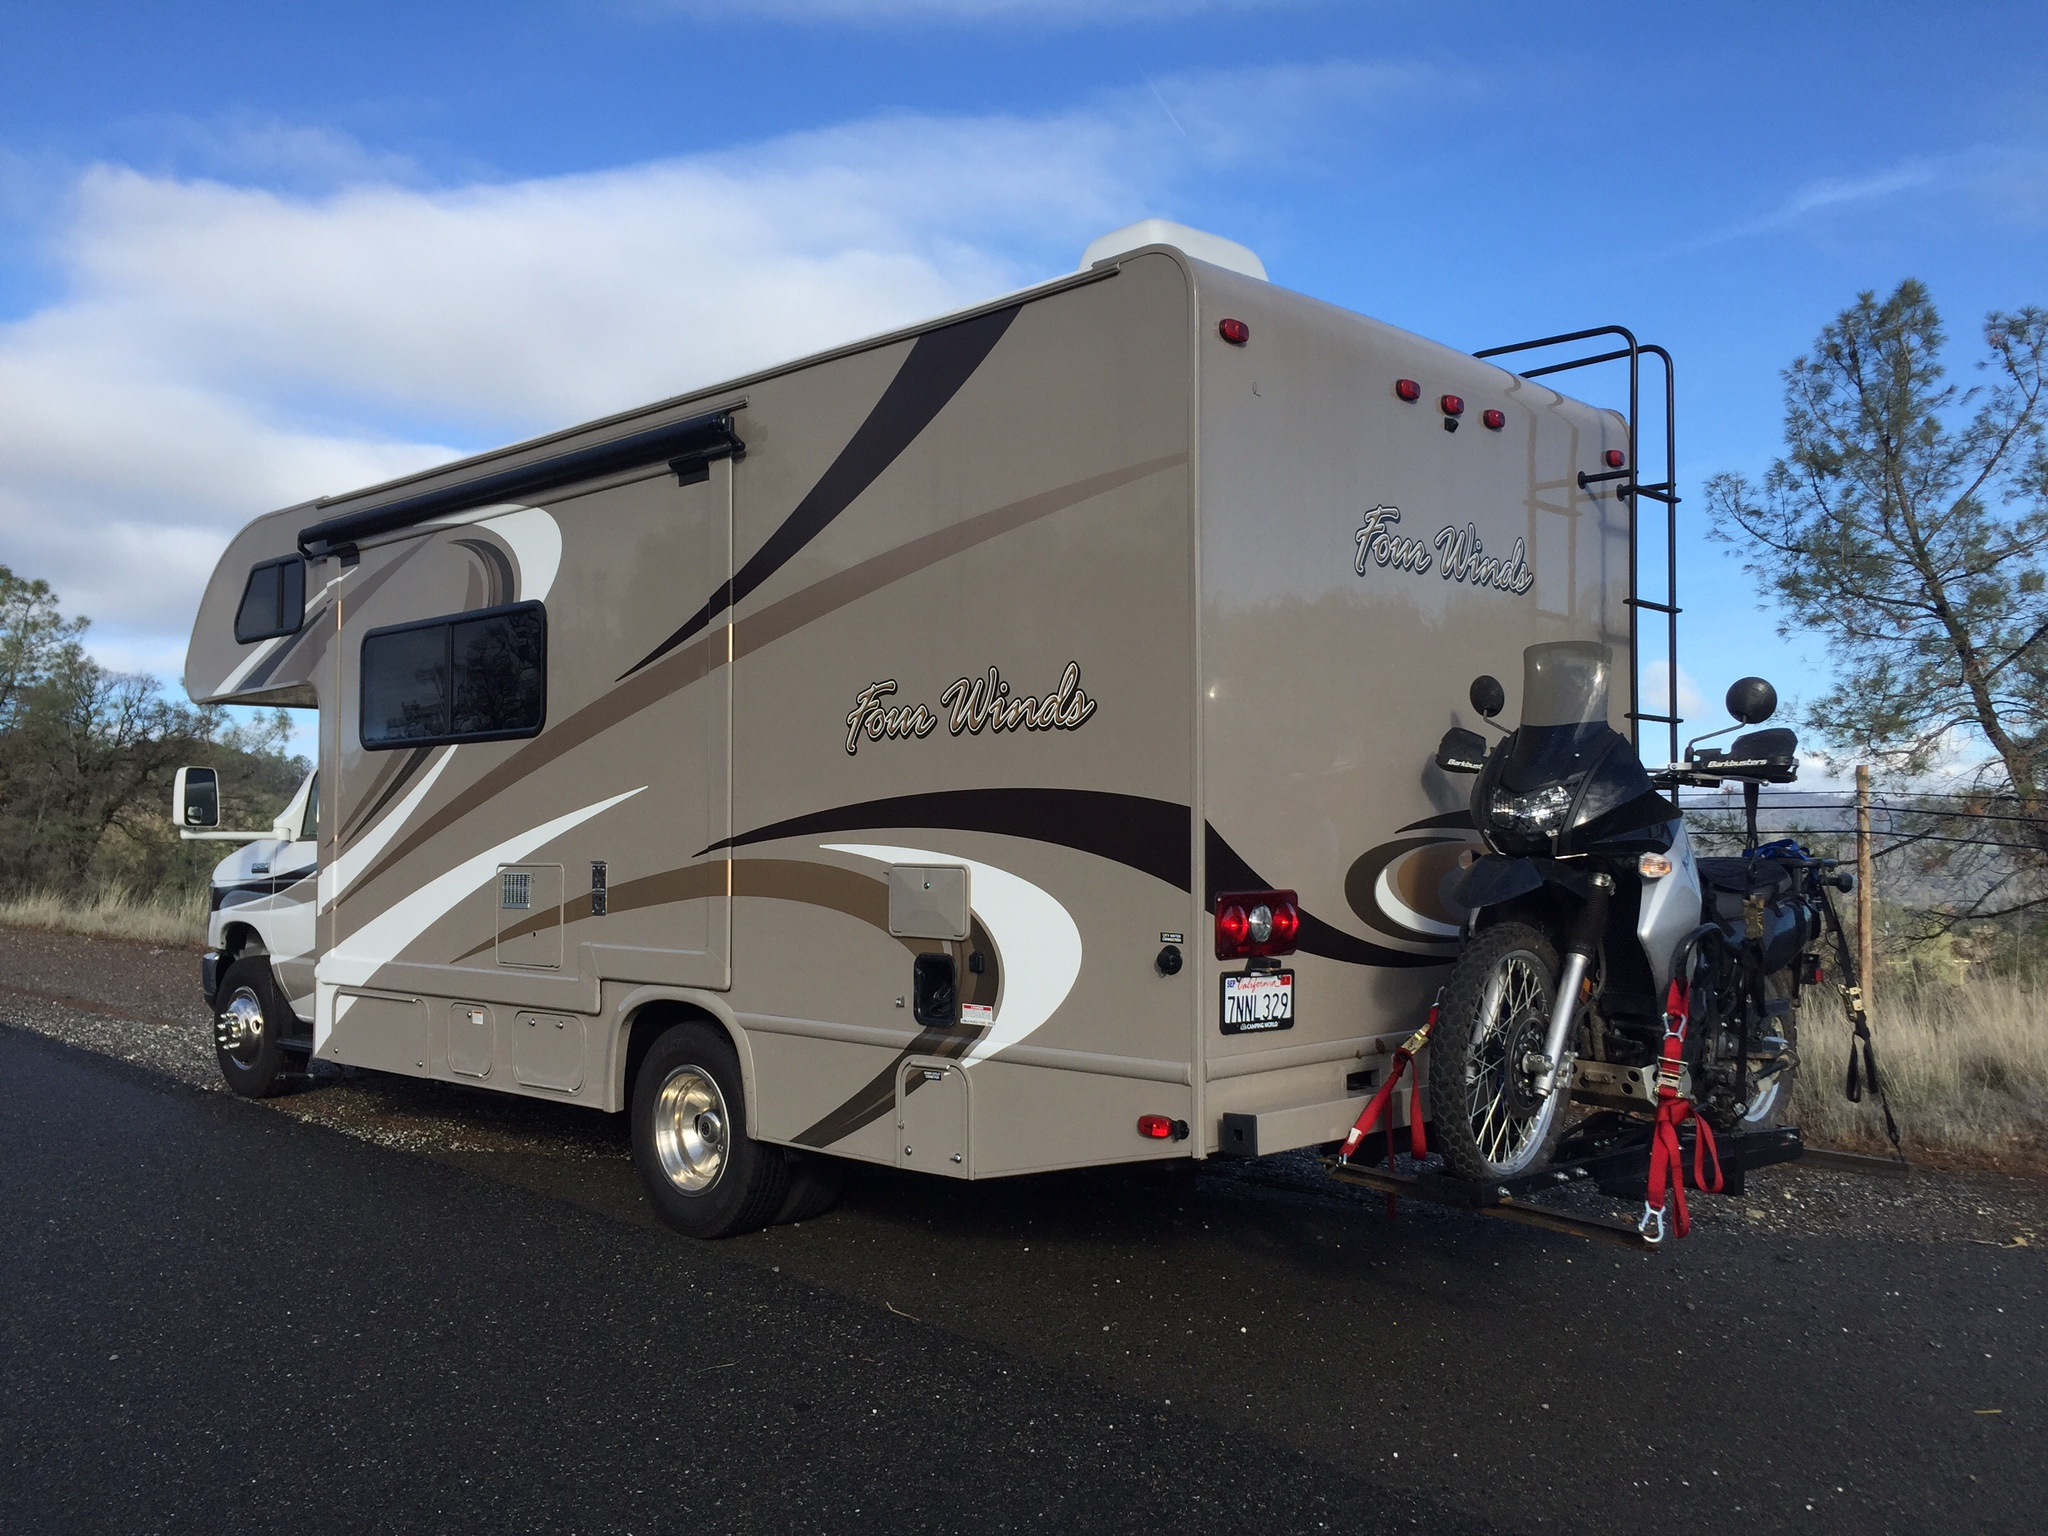 Top 25 Nevada City Ca Rv Rentals And Motorhome Outdoorsy 1990 Fleetwood Southwind Wiring Diagram Free Picture